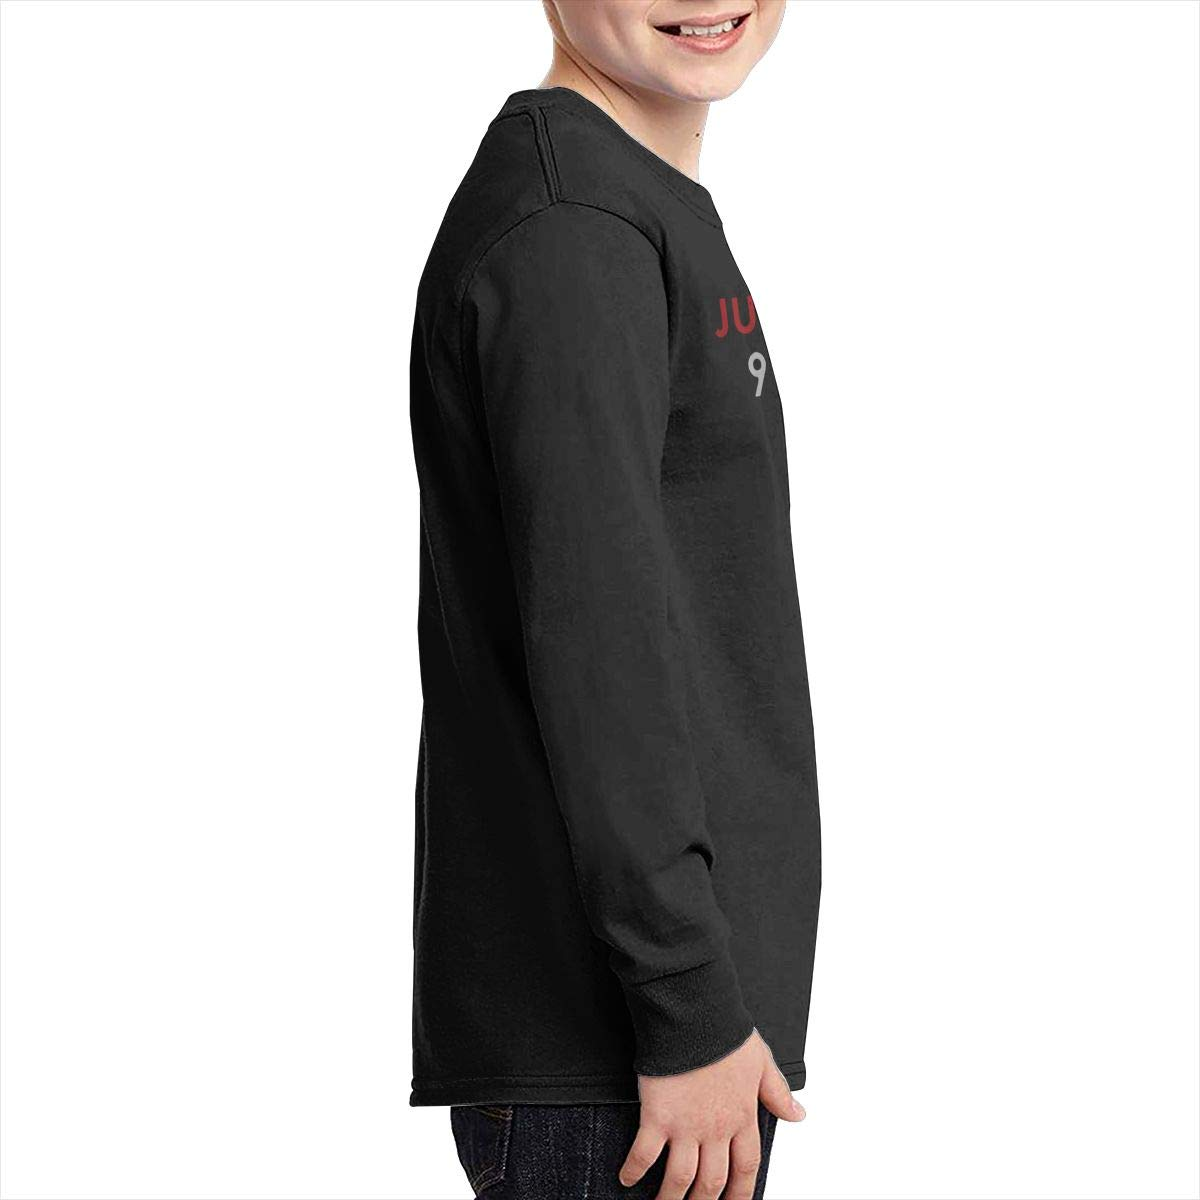 TWOSKILL Youth Juice-WRLD Long Sleeves Shirt Boys Girls